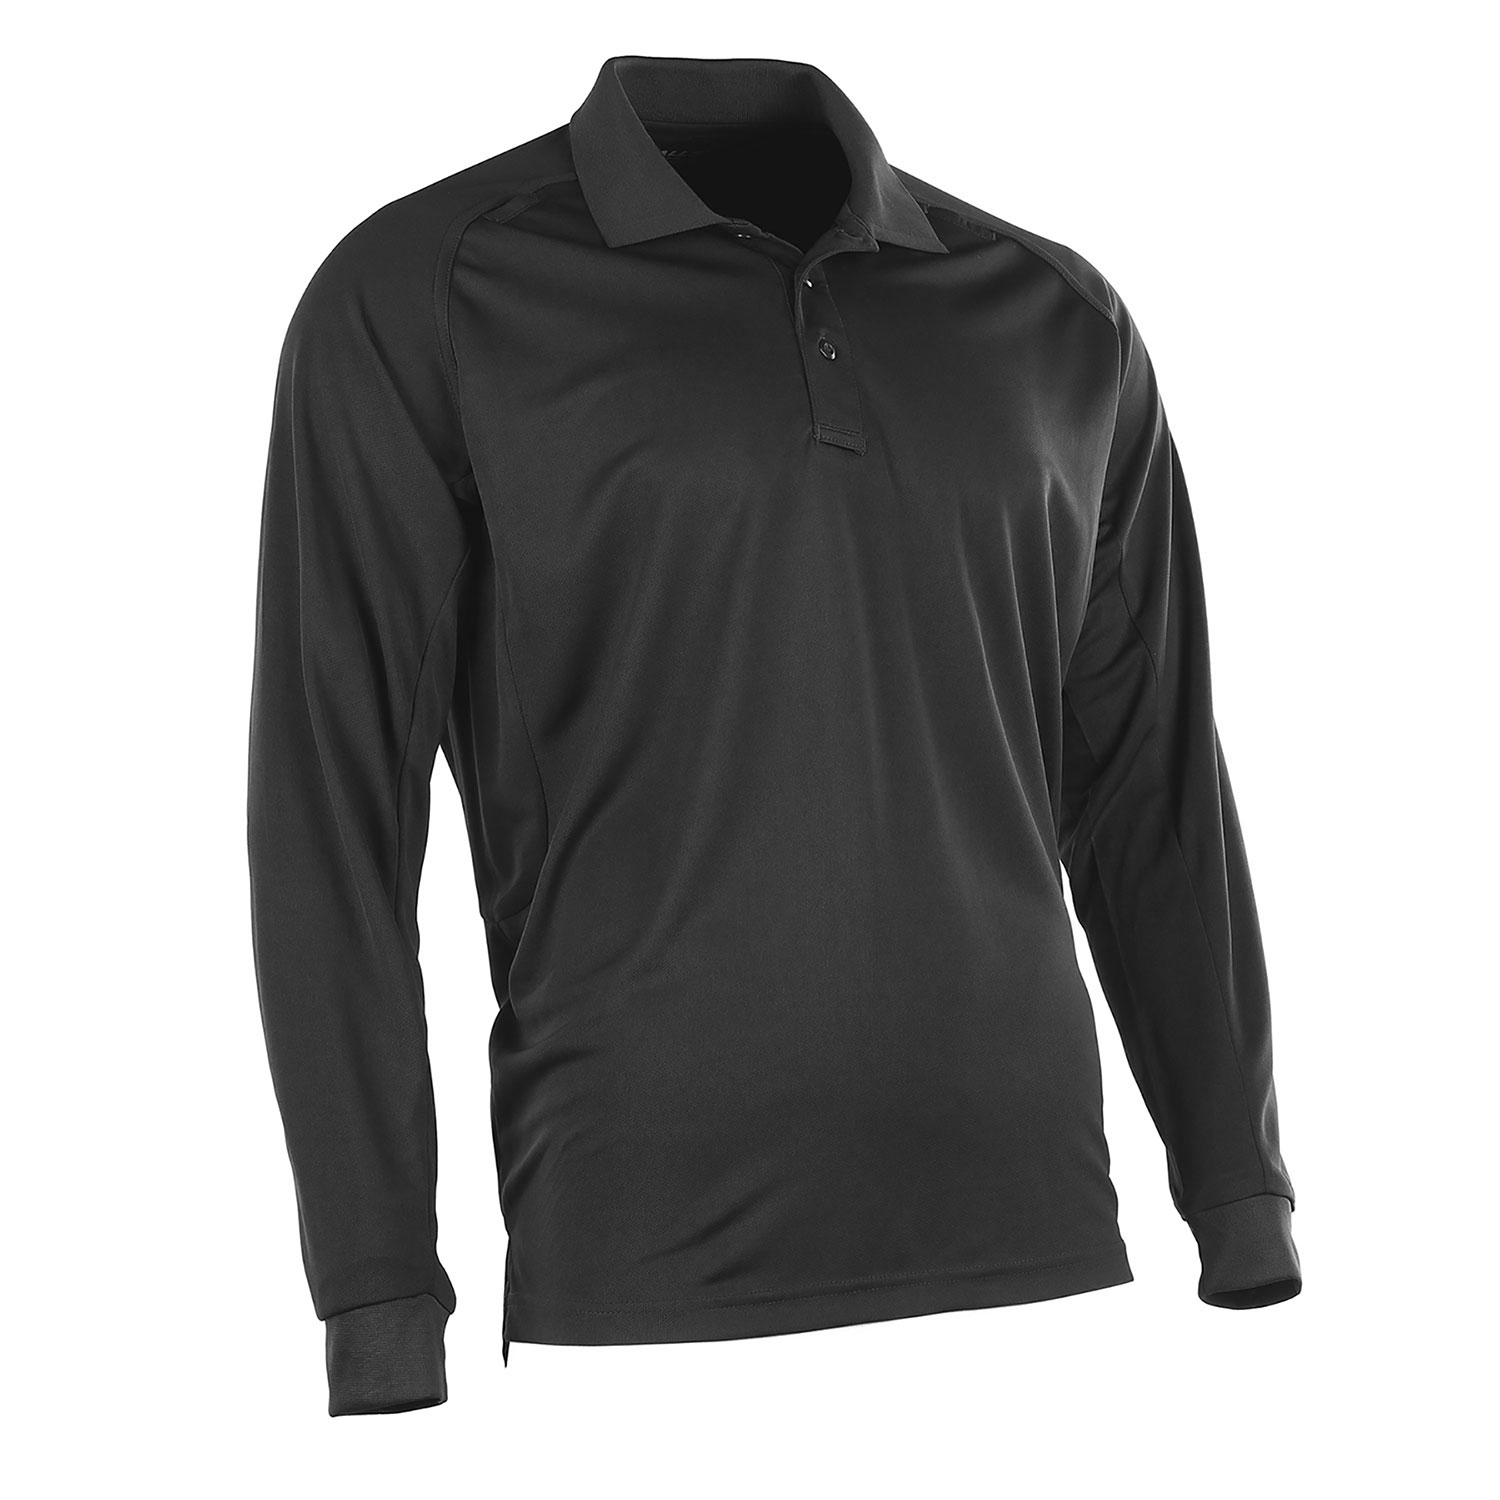 Galls Tac Force Lightweight Long Sleeve Polo